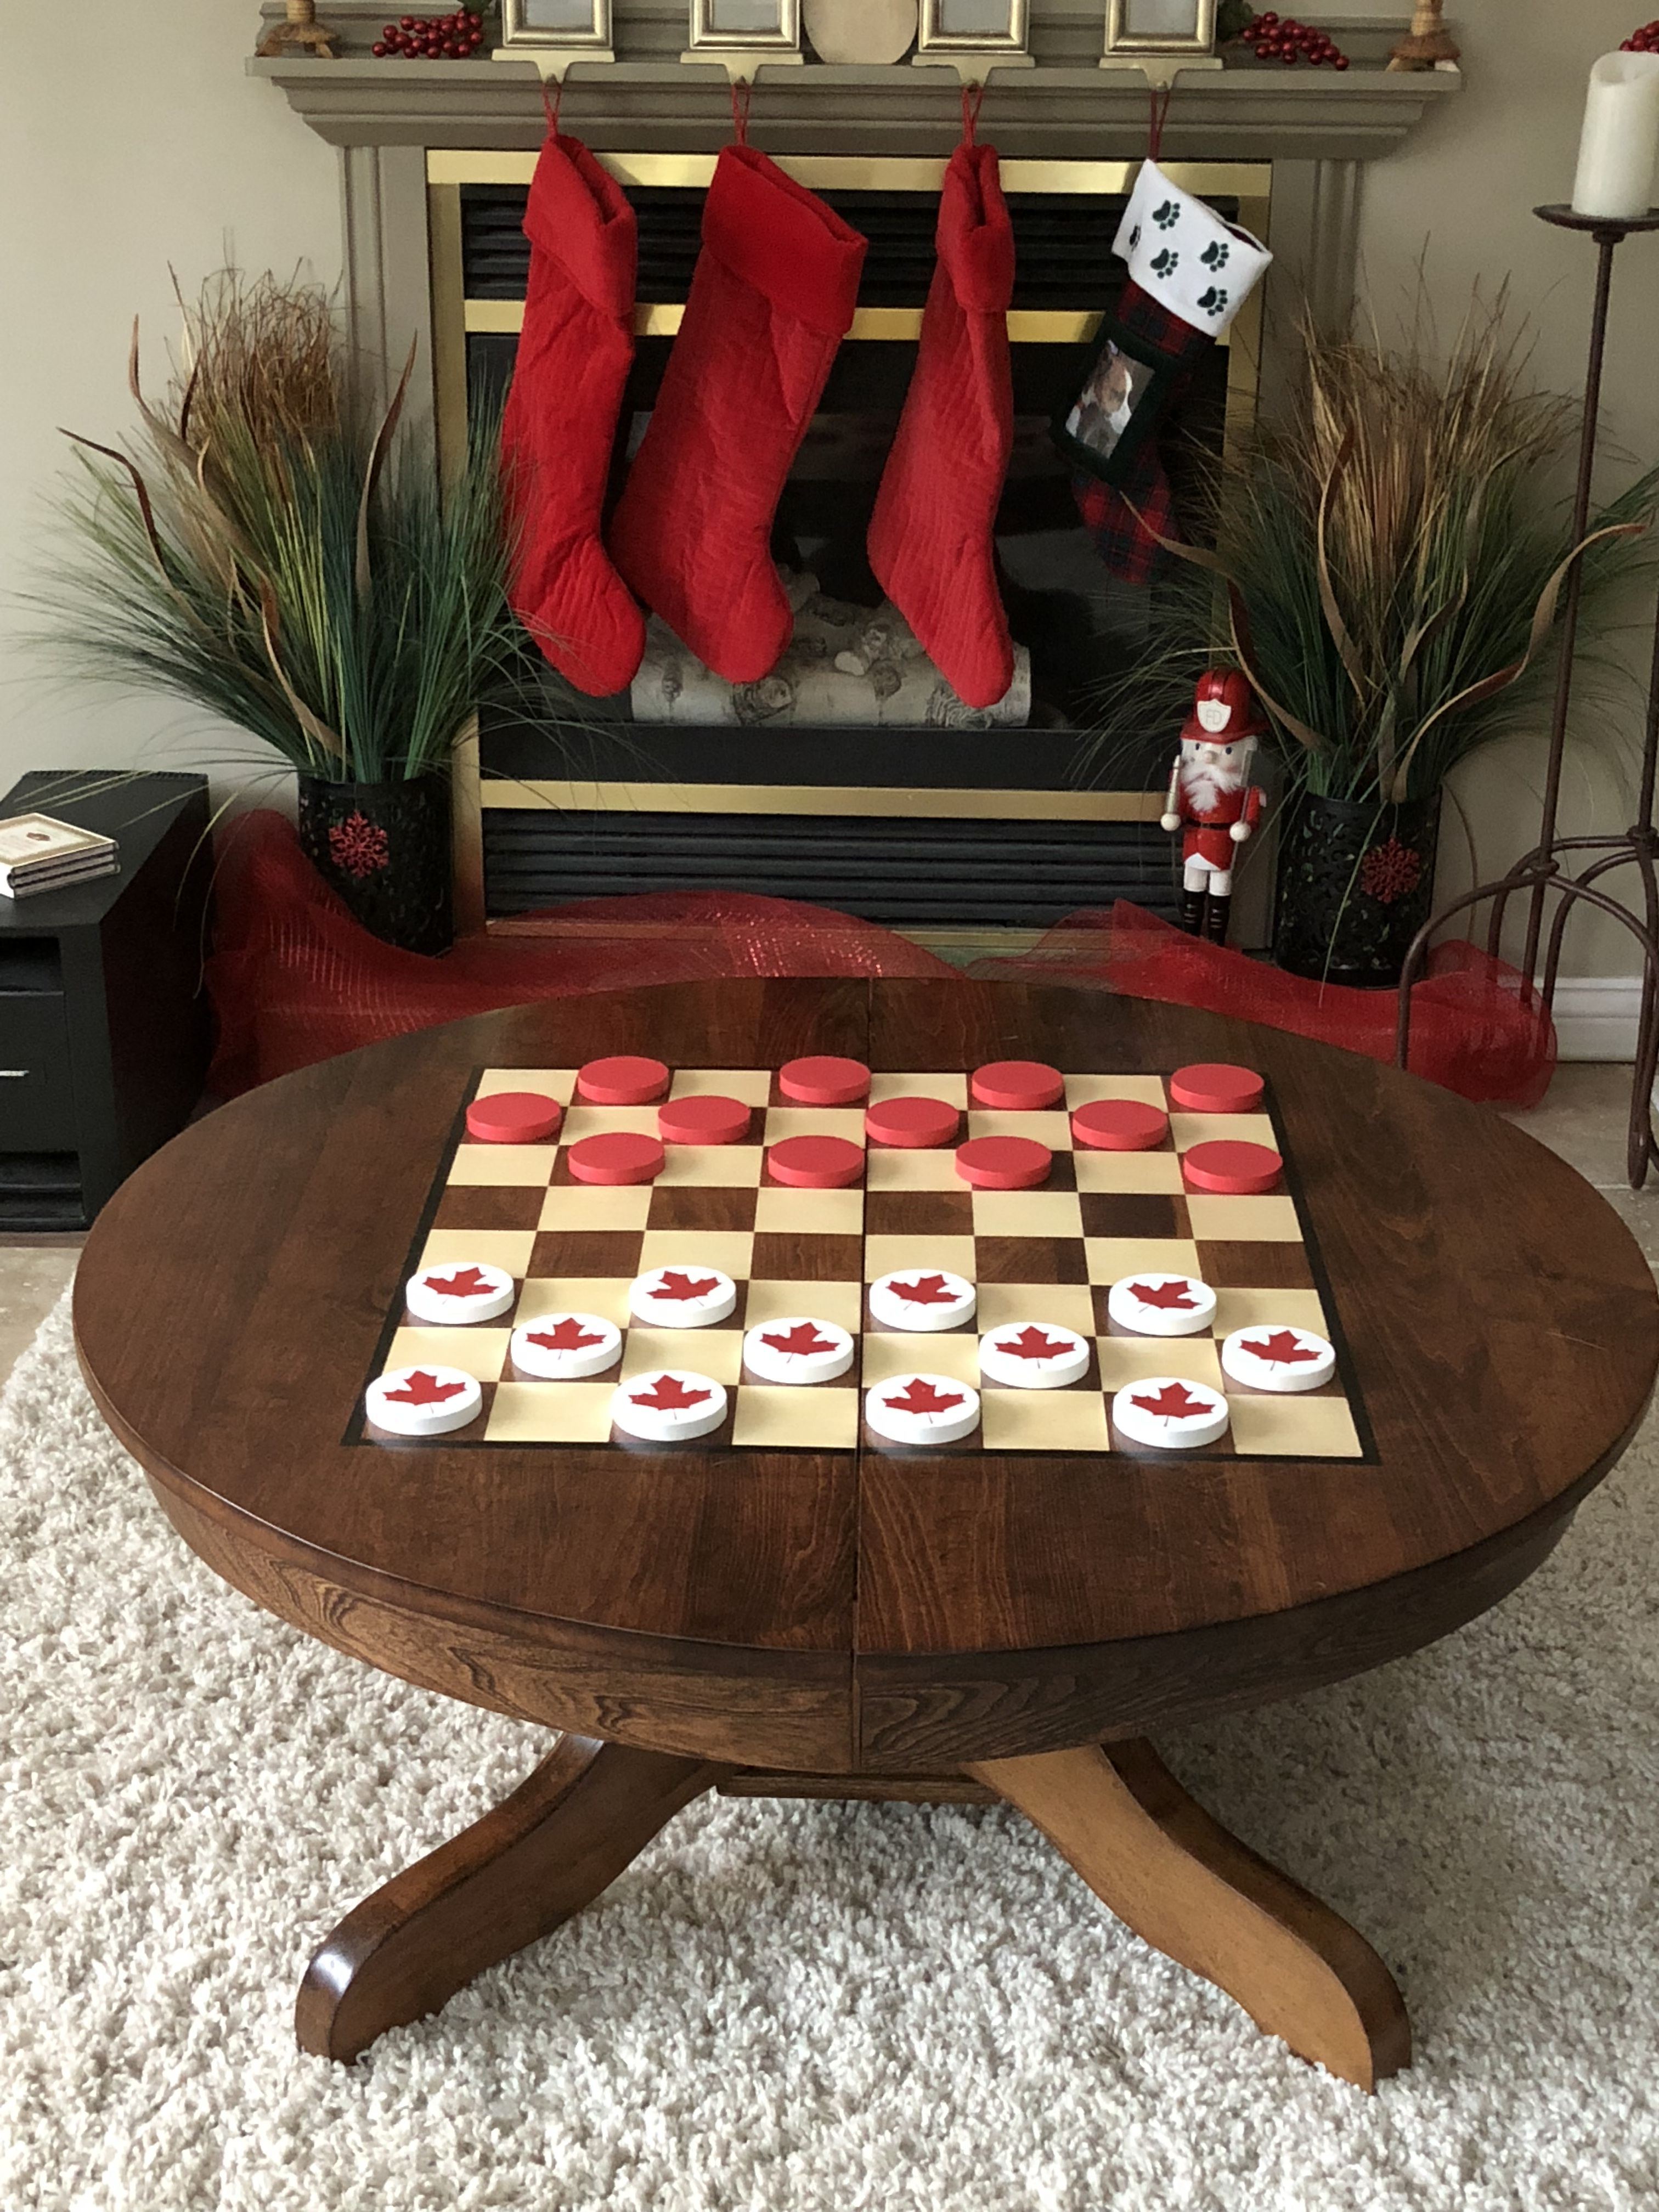 Our game table with the 150 year Canada checkers. Table